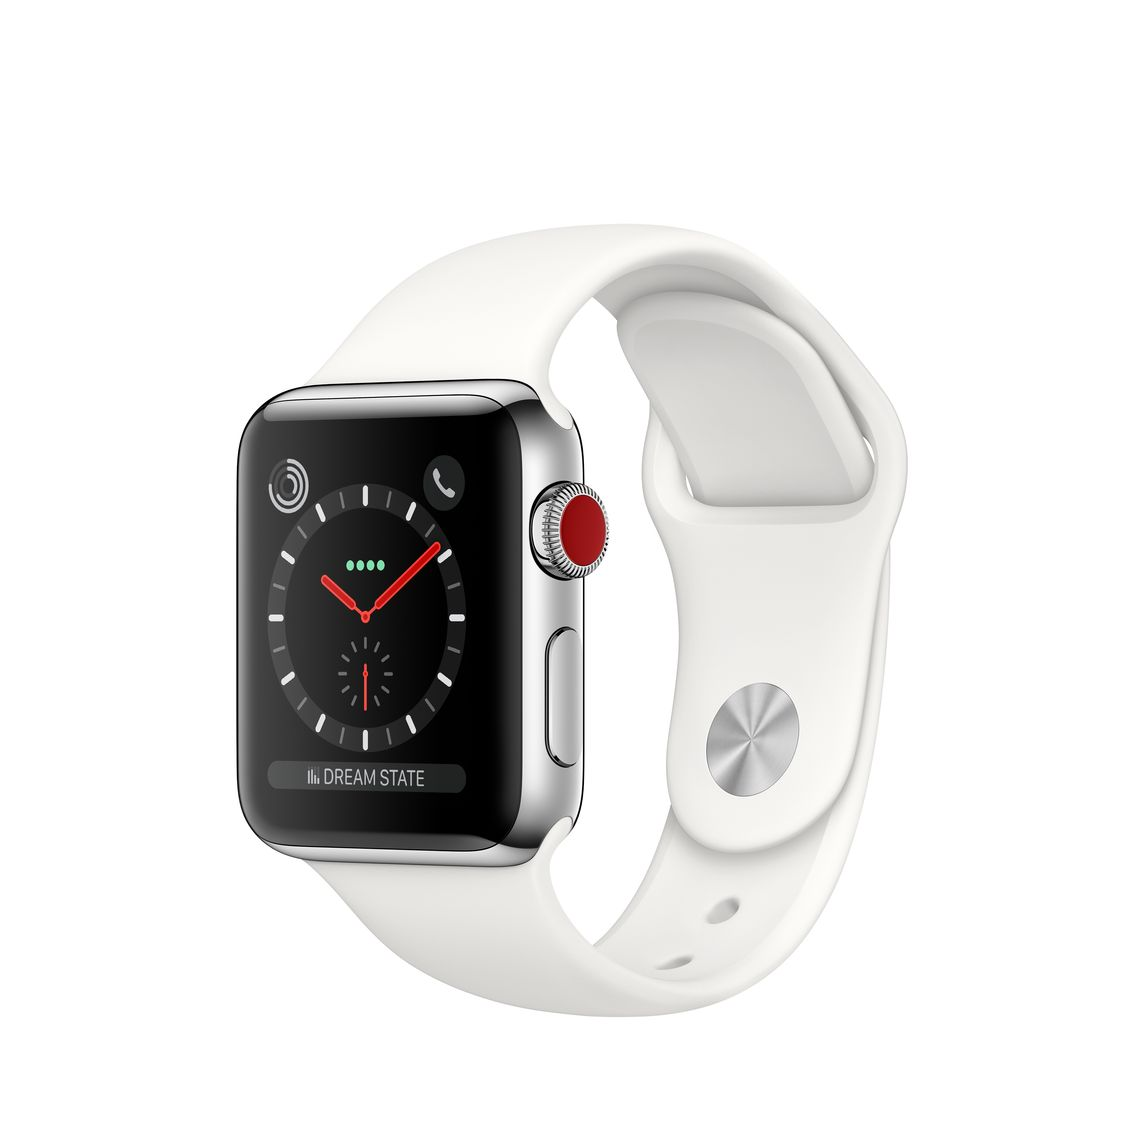 Refurbished Apple Watch Series 3 GPS + Cellular, 38mm Stainless Steel Case with Soft White Sport Band